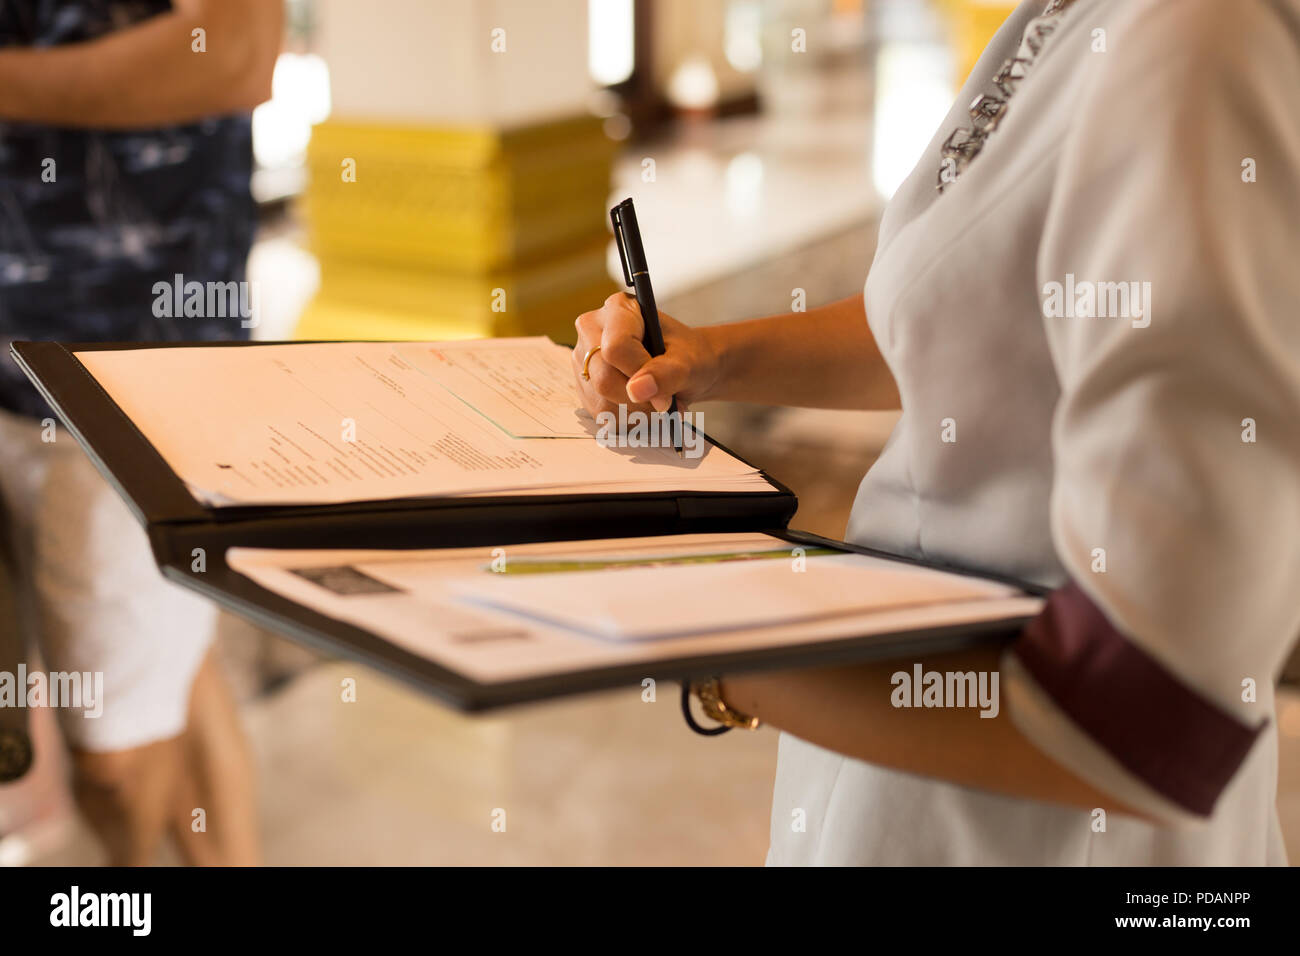 Receptionist filling in registration form at the hotel. - Stock Image